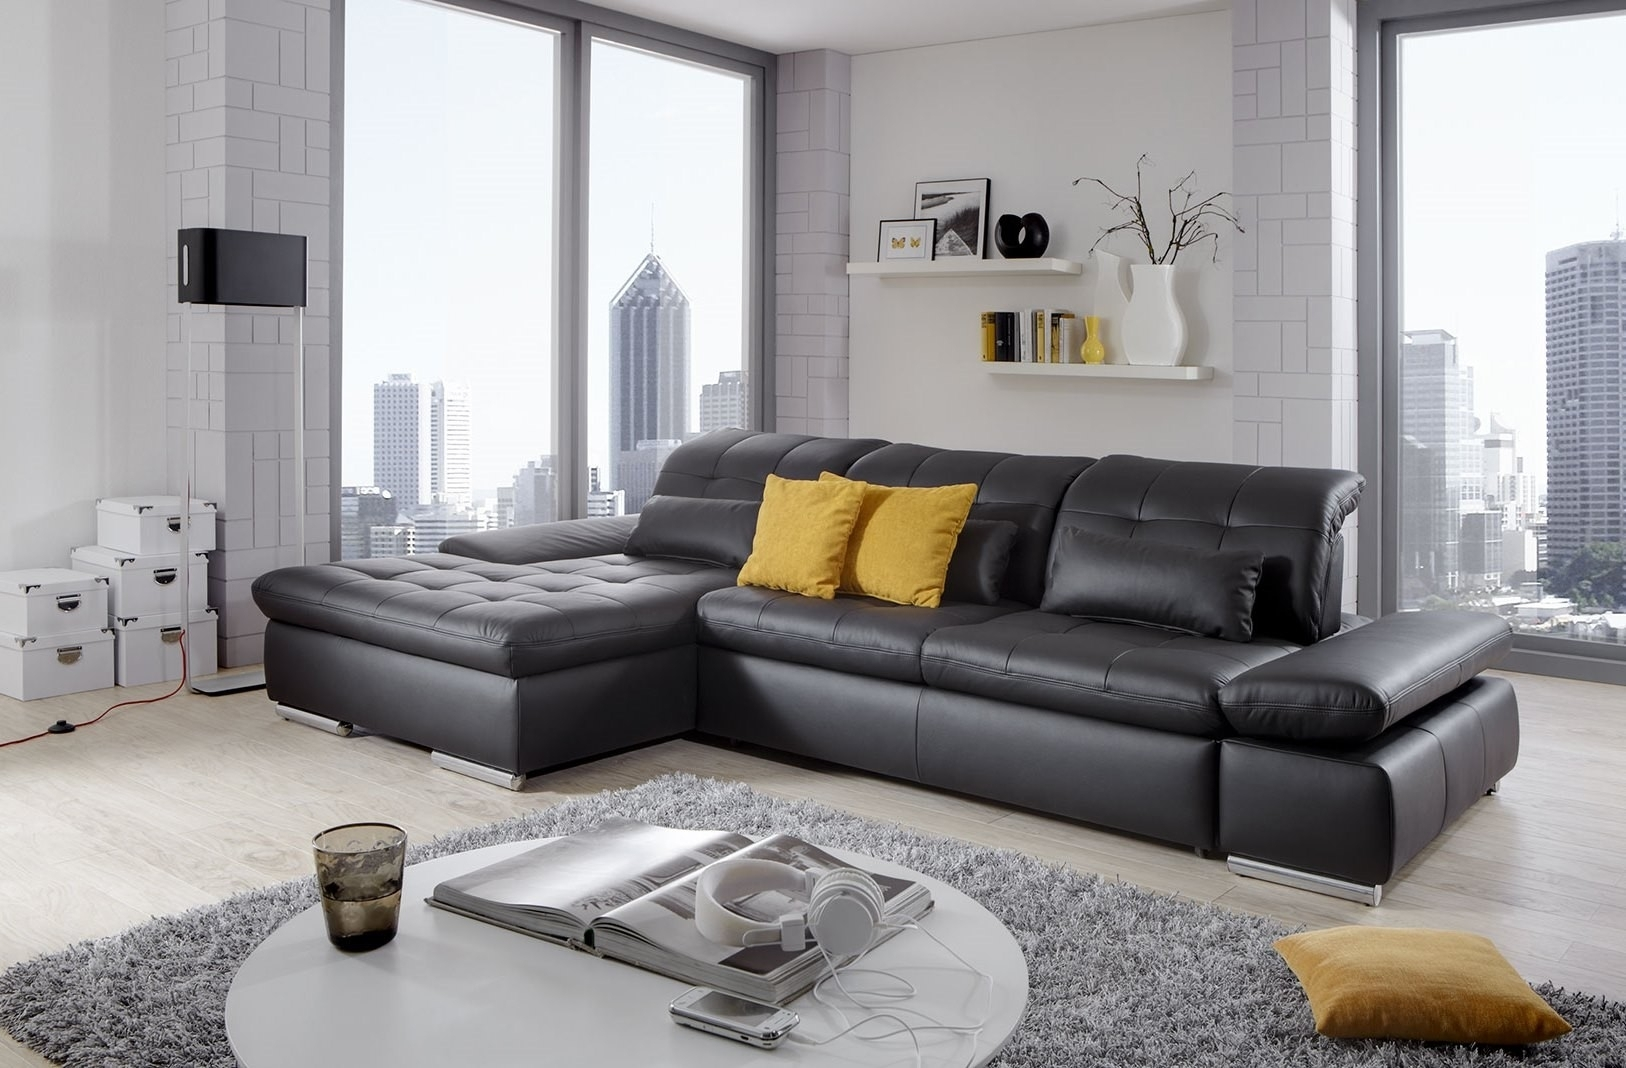 Alpine Sectional Sofa In Black Leather Left Chaise Inside Trinidad And Tobago Sectional Sofas (Image 1 of 10)